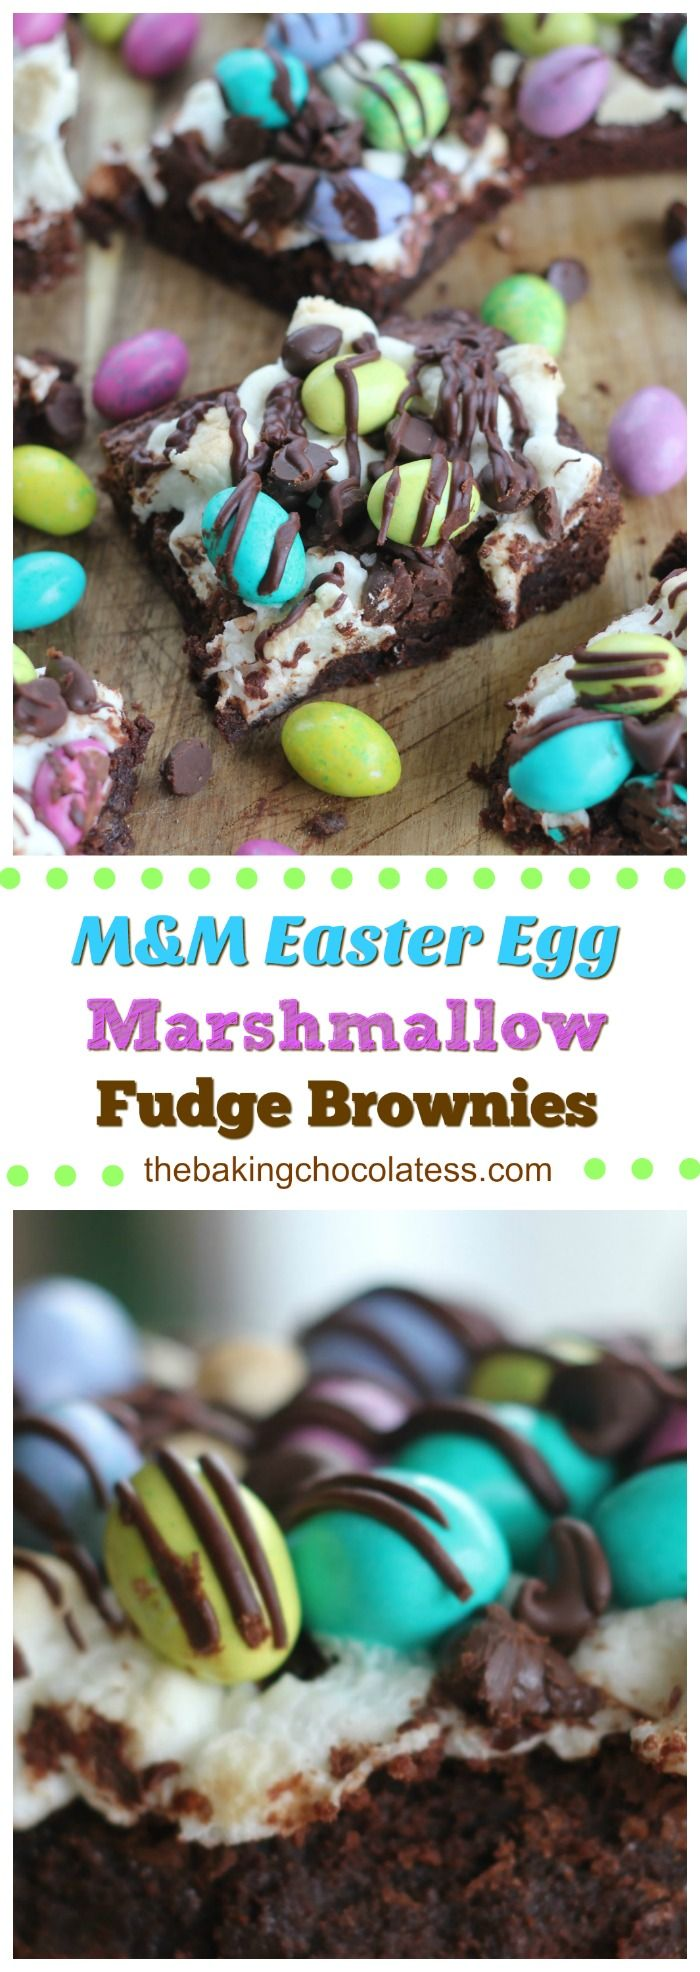 "M&M Easter Egg Marshmallow Fudge Brownies - ""Awesome as heck"" Easter gourmet brownies to serve for your Easter family fun via @https://www.pinterest.com/BaknChocolaTess/"